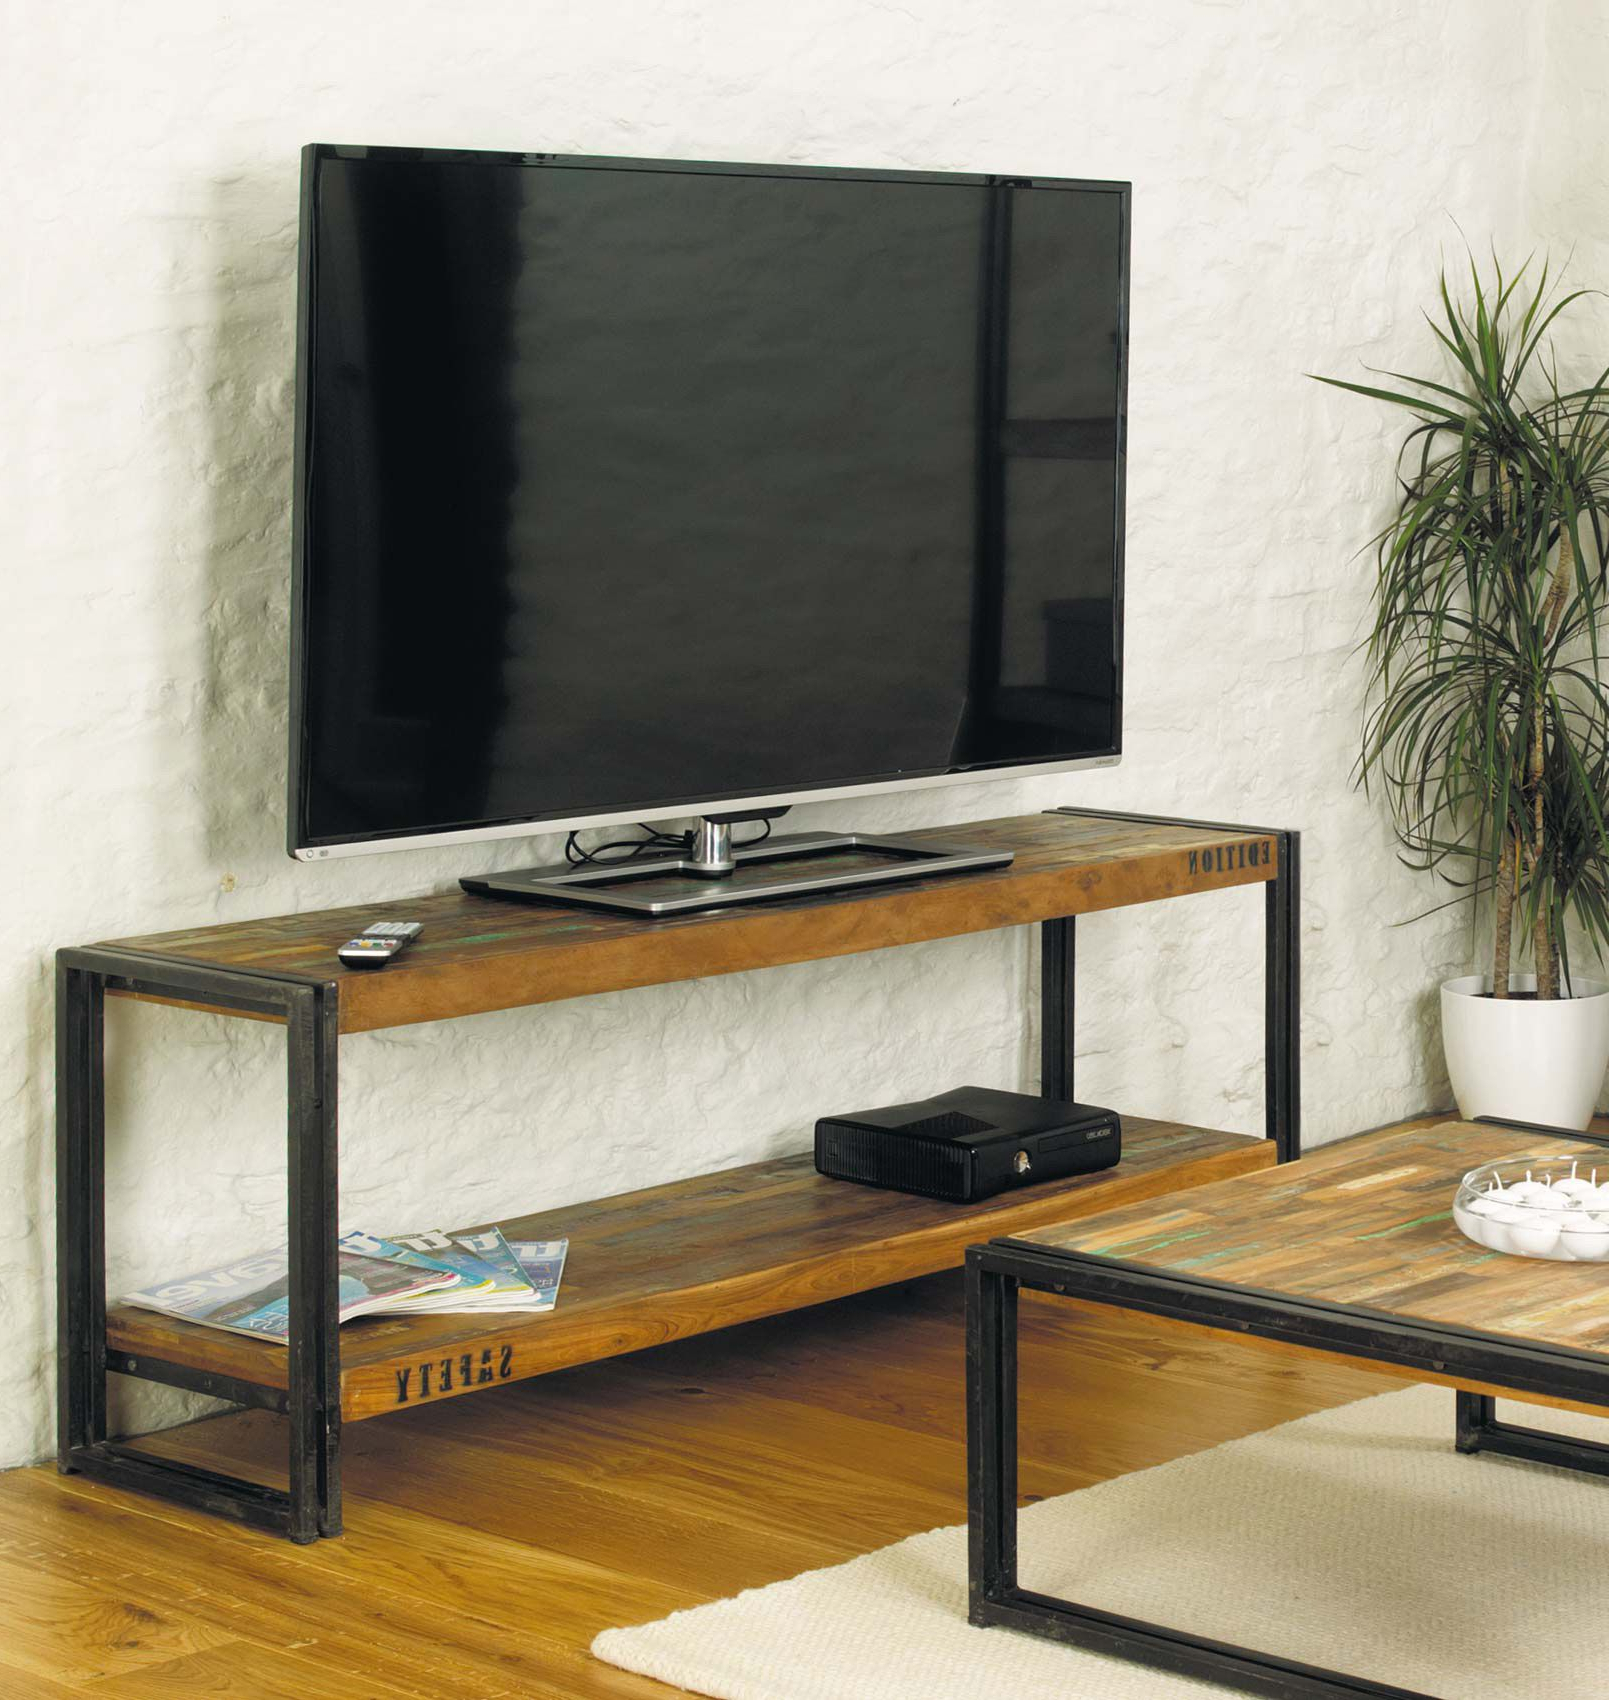 Industrial Tv Stand With Metal Legs And Reclaimed Wood (View 12 of 20)